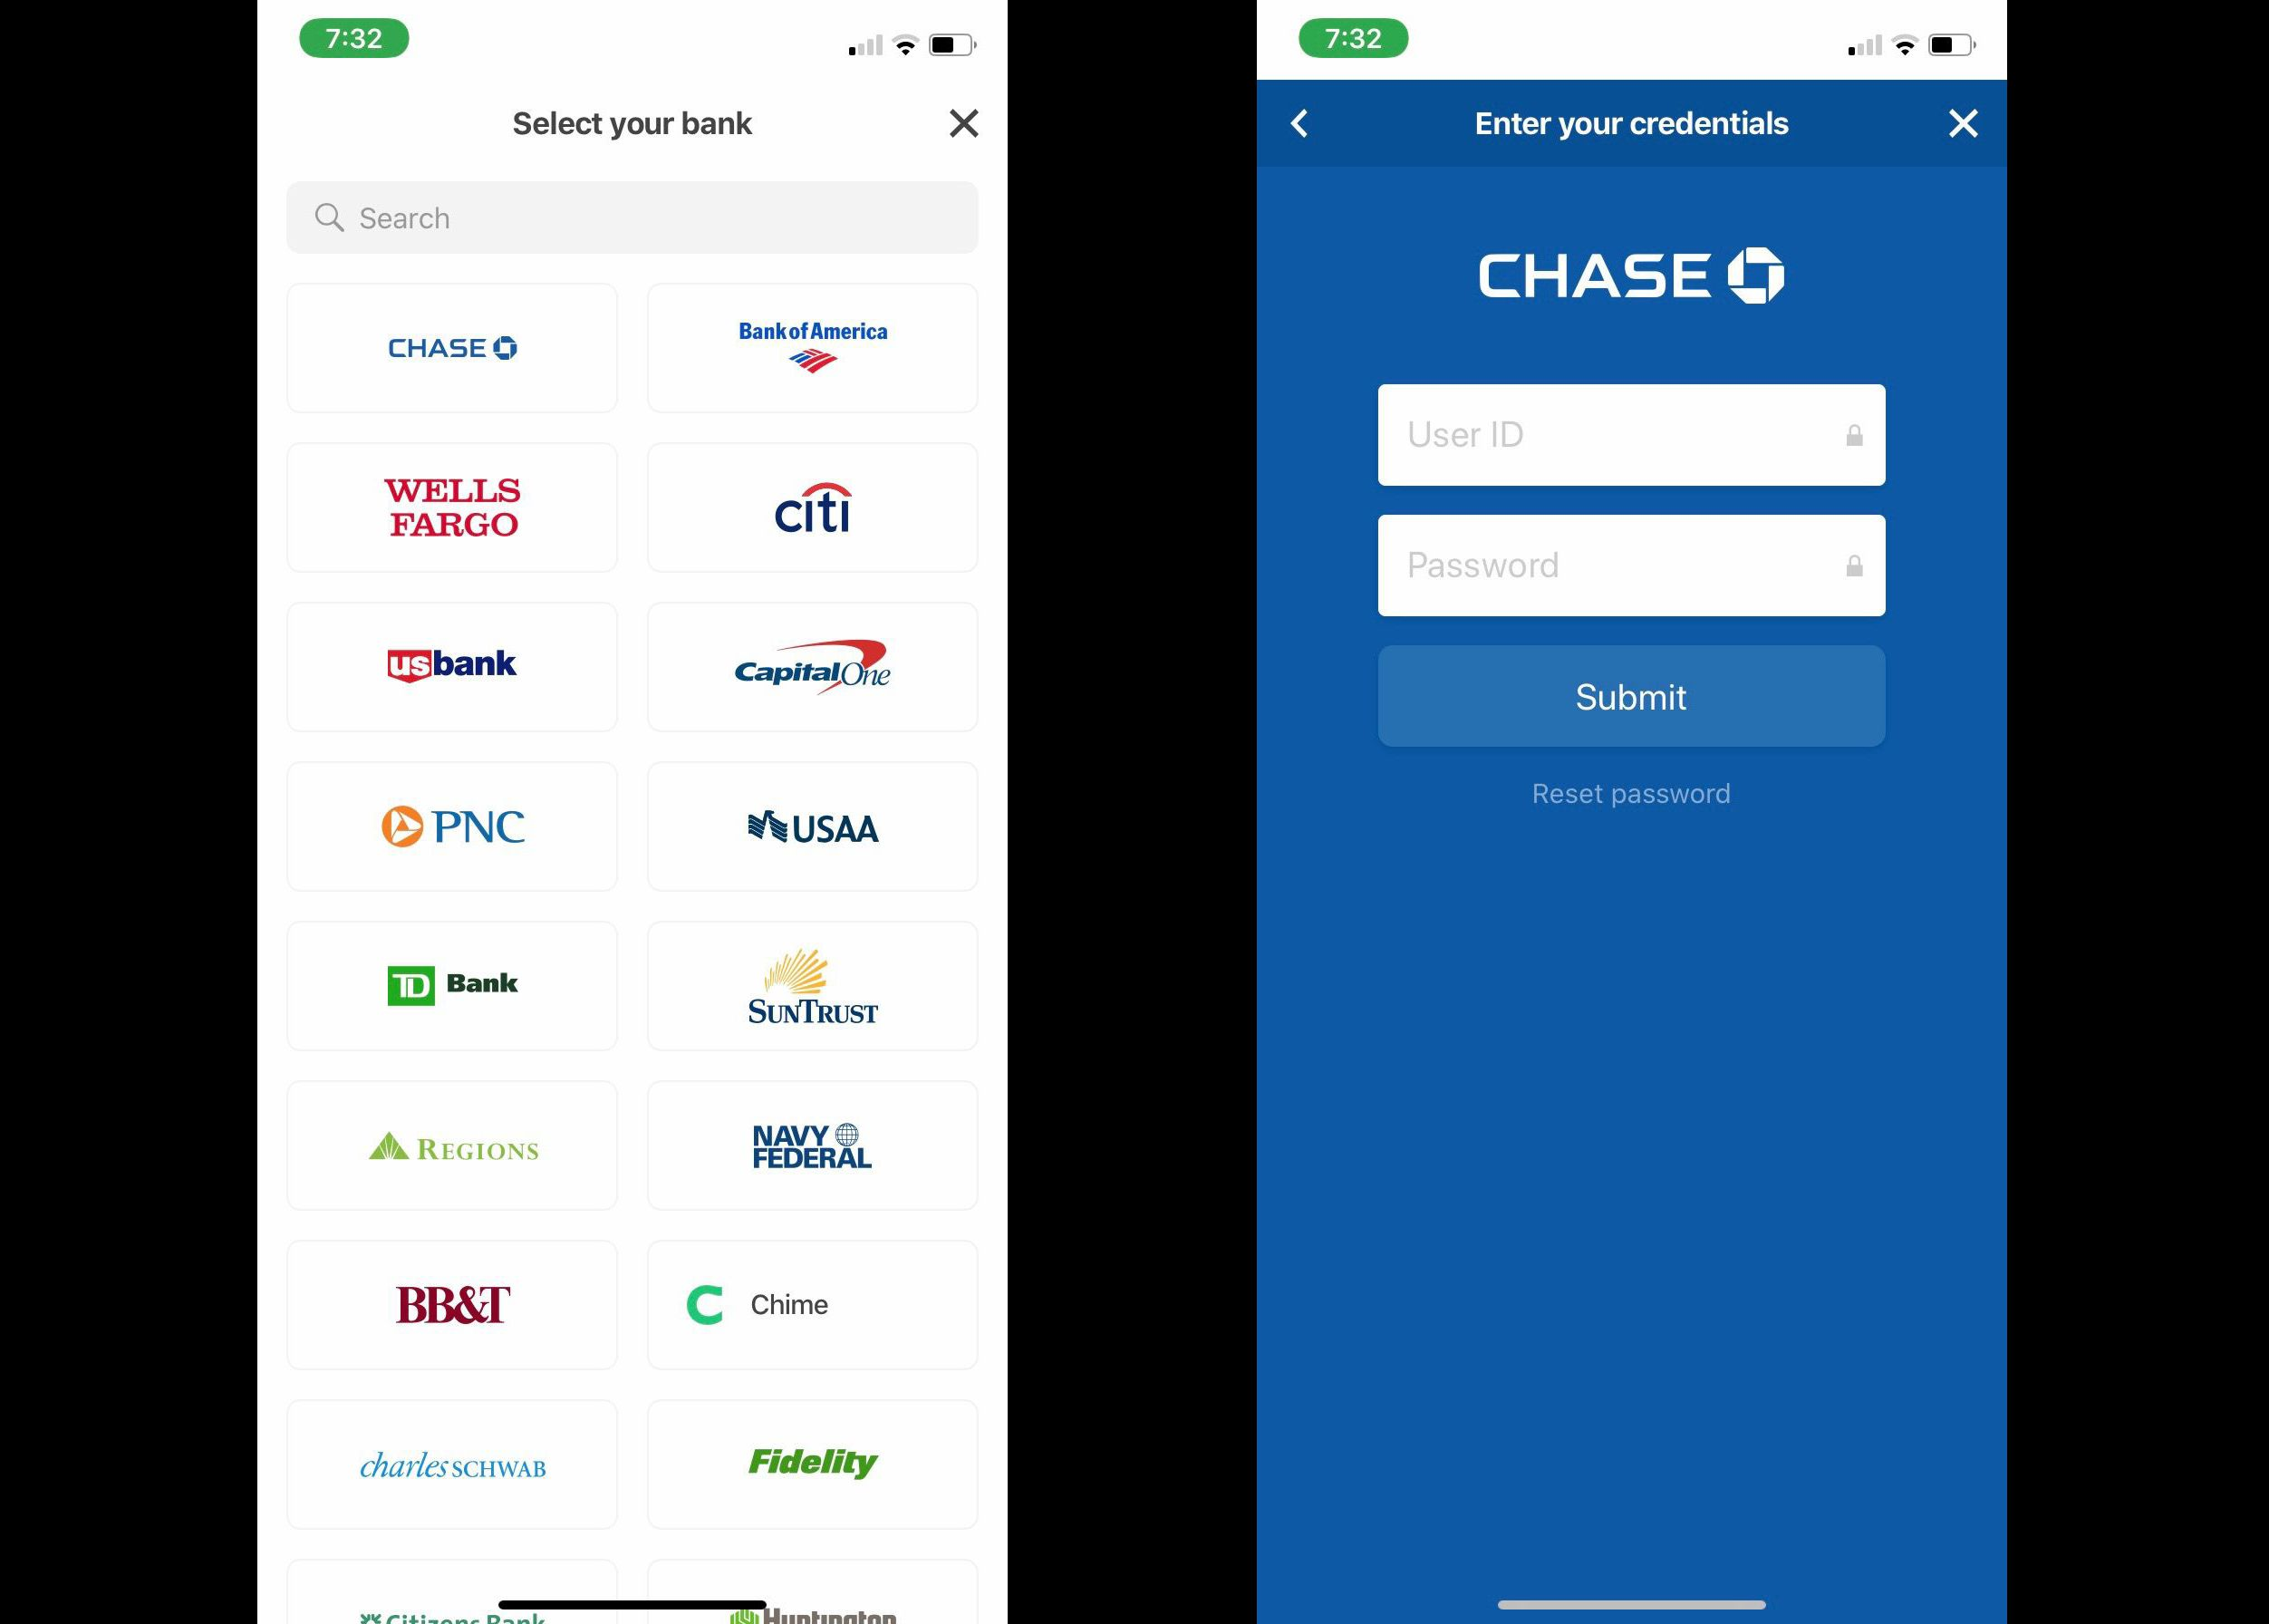 Select Your Bank in Cash App